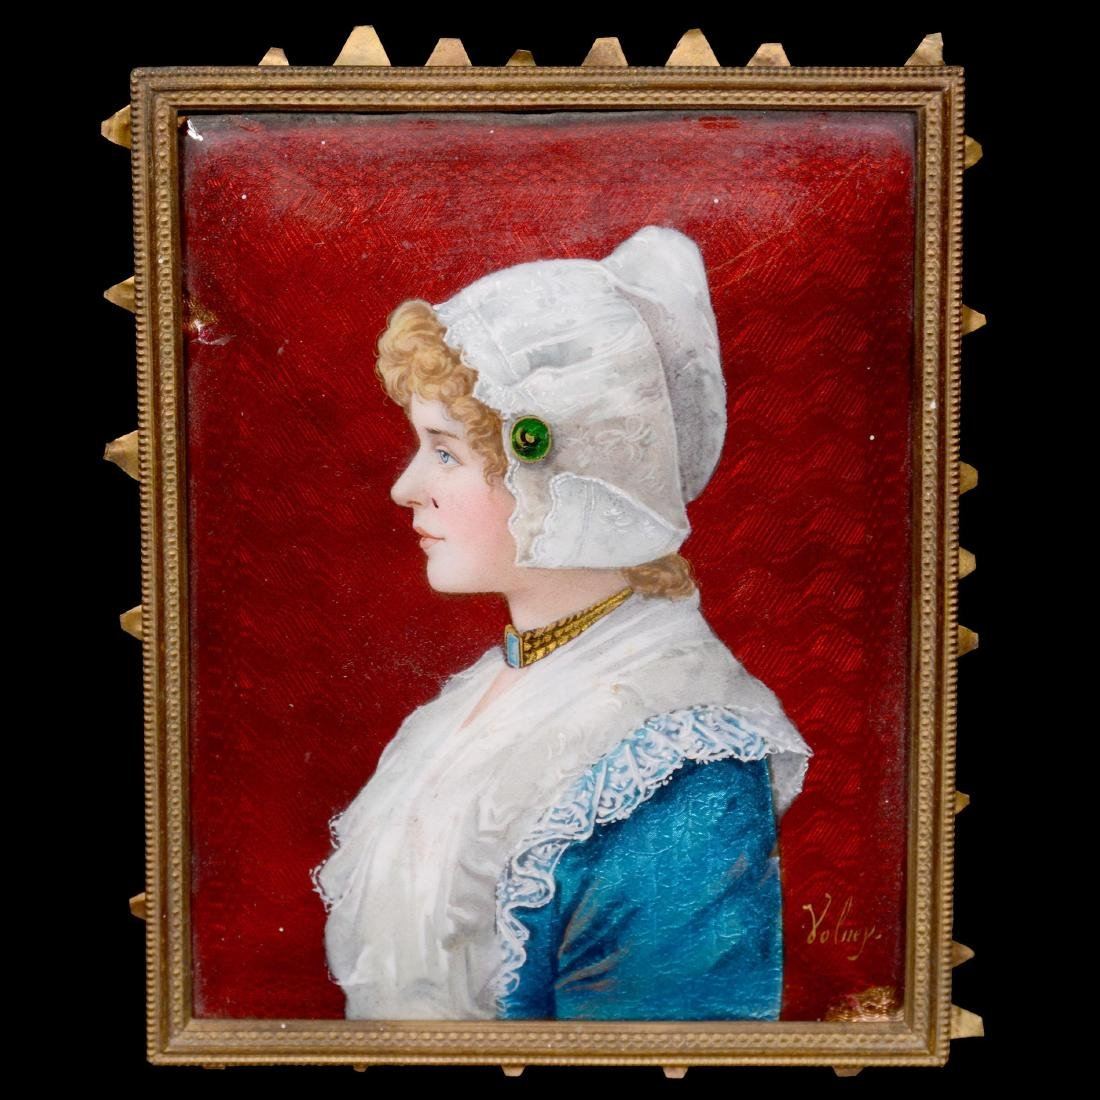 French Enamel on Copper Plaque